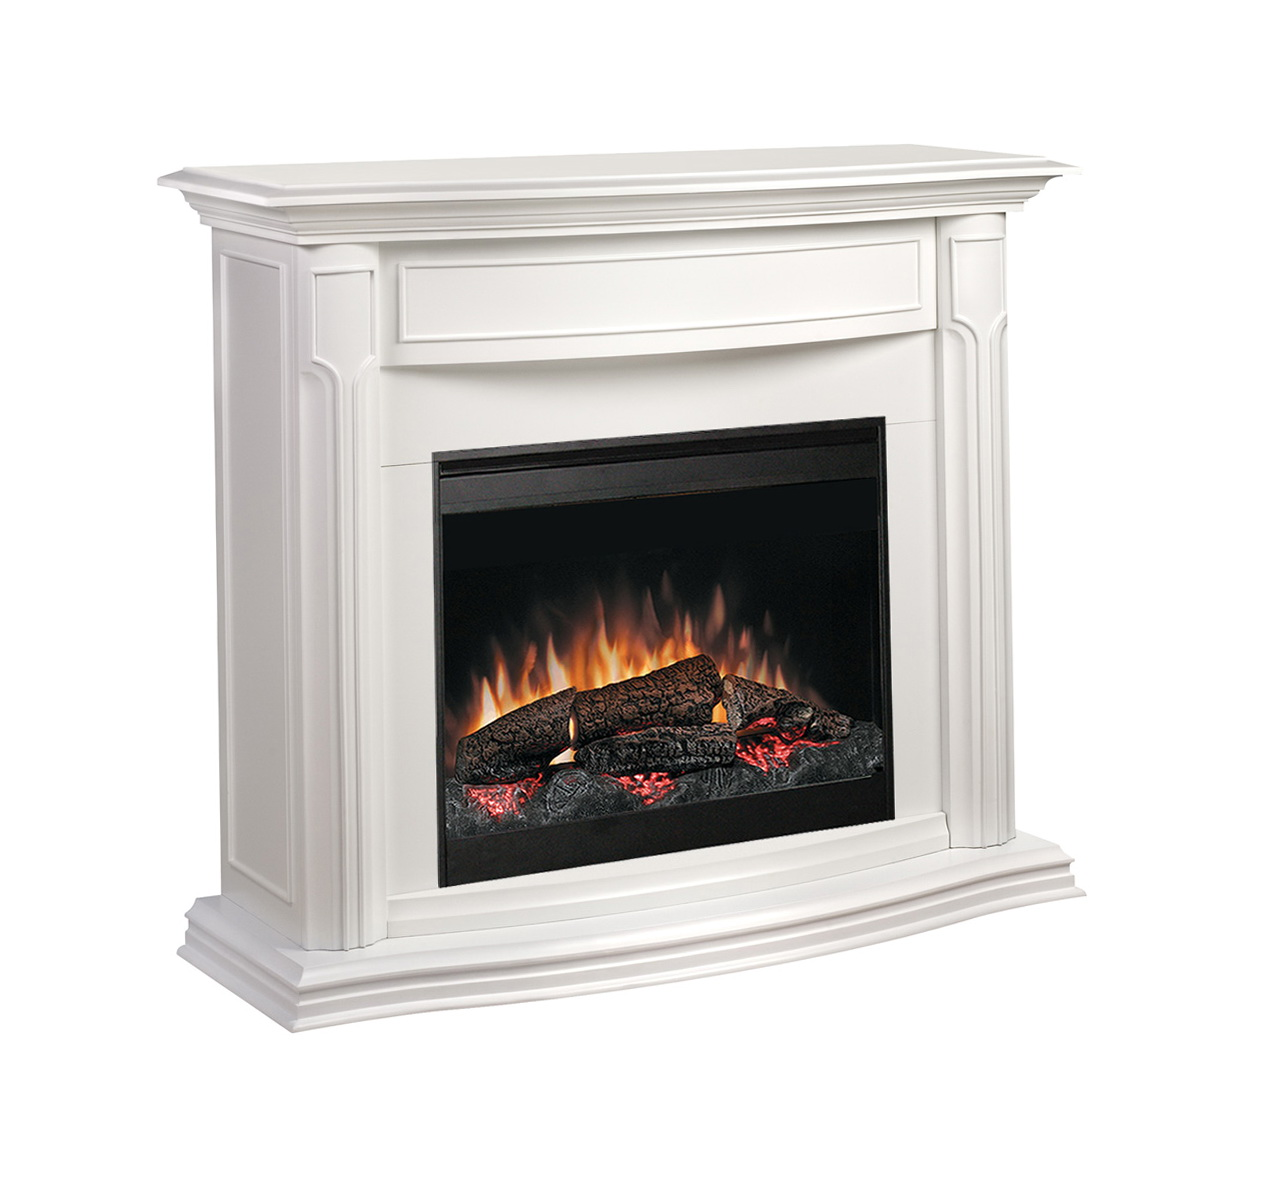 media electric thermostat wood with pd and infrared fireplace remote chimney black free shop btu mantel in w quartz veneer